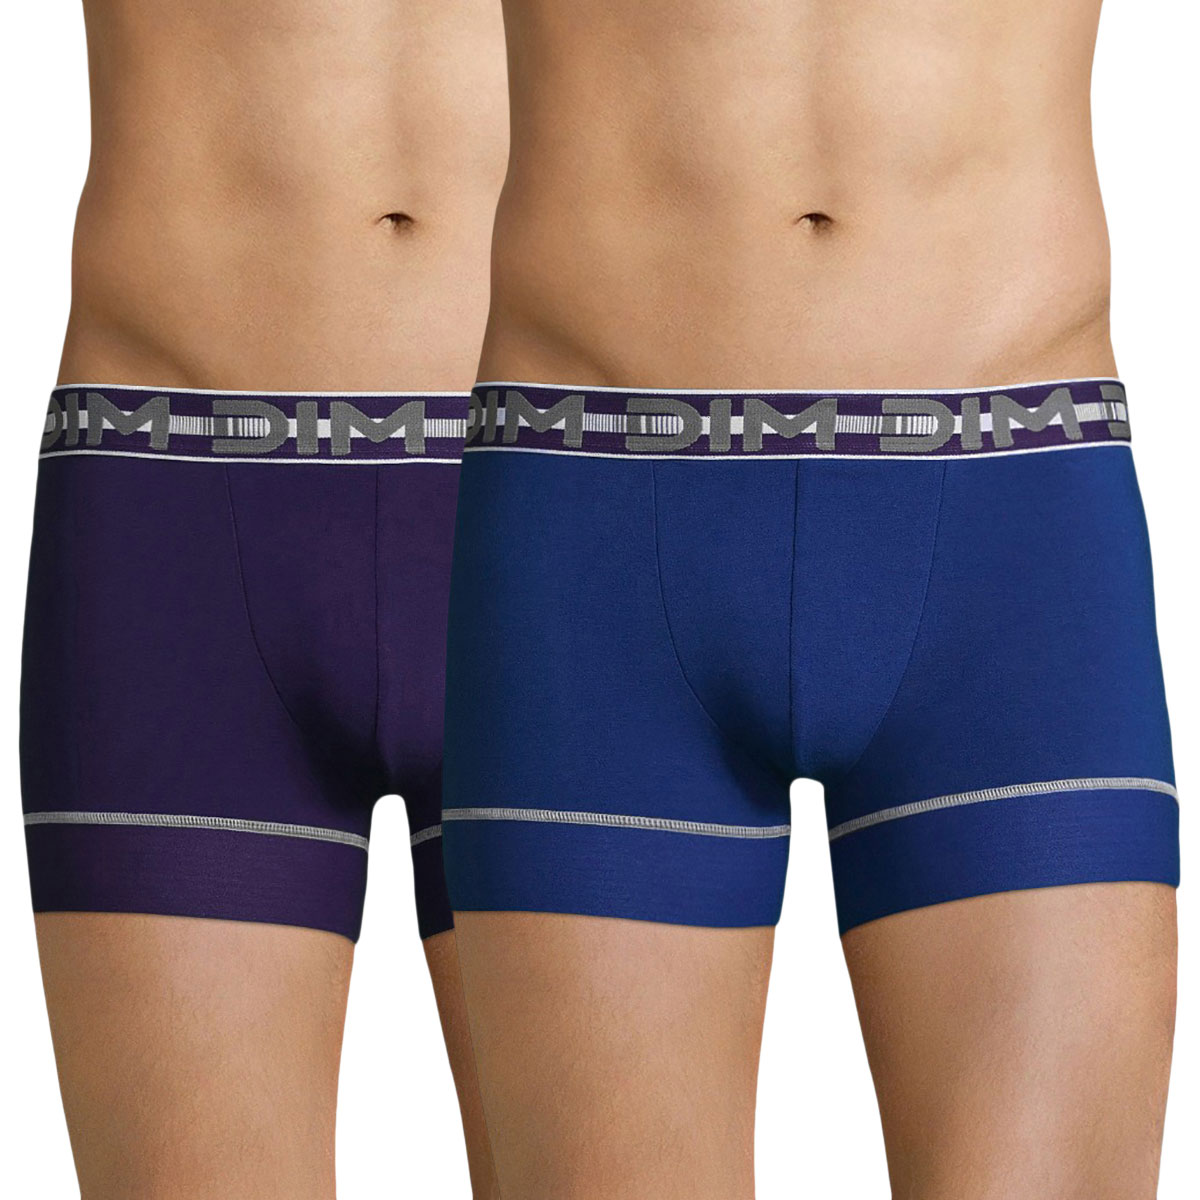 Lot de 2 boxers bleu et violet 3D Flex Stay & Fit